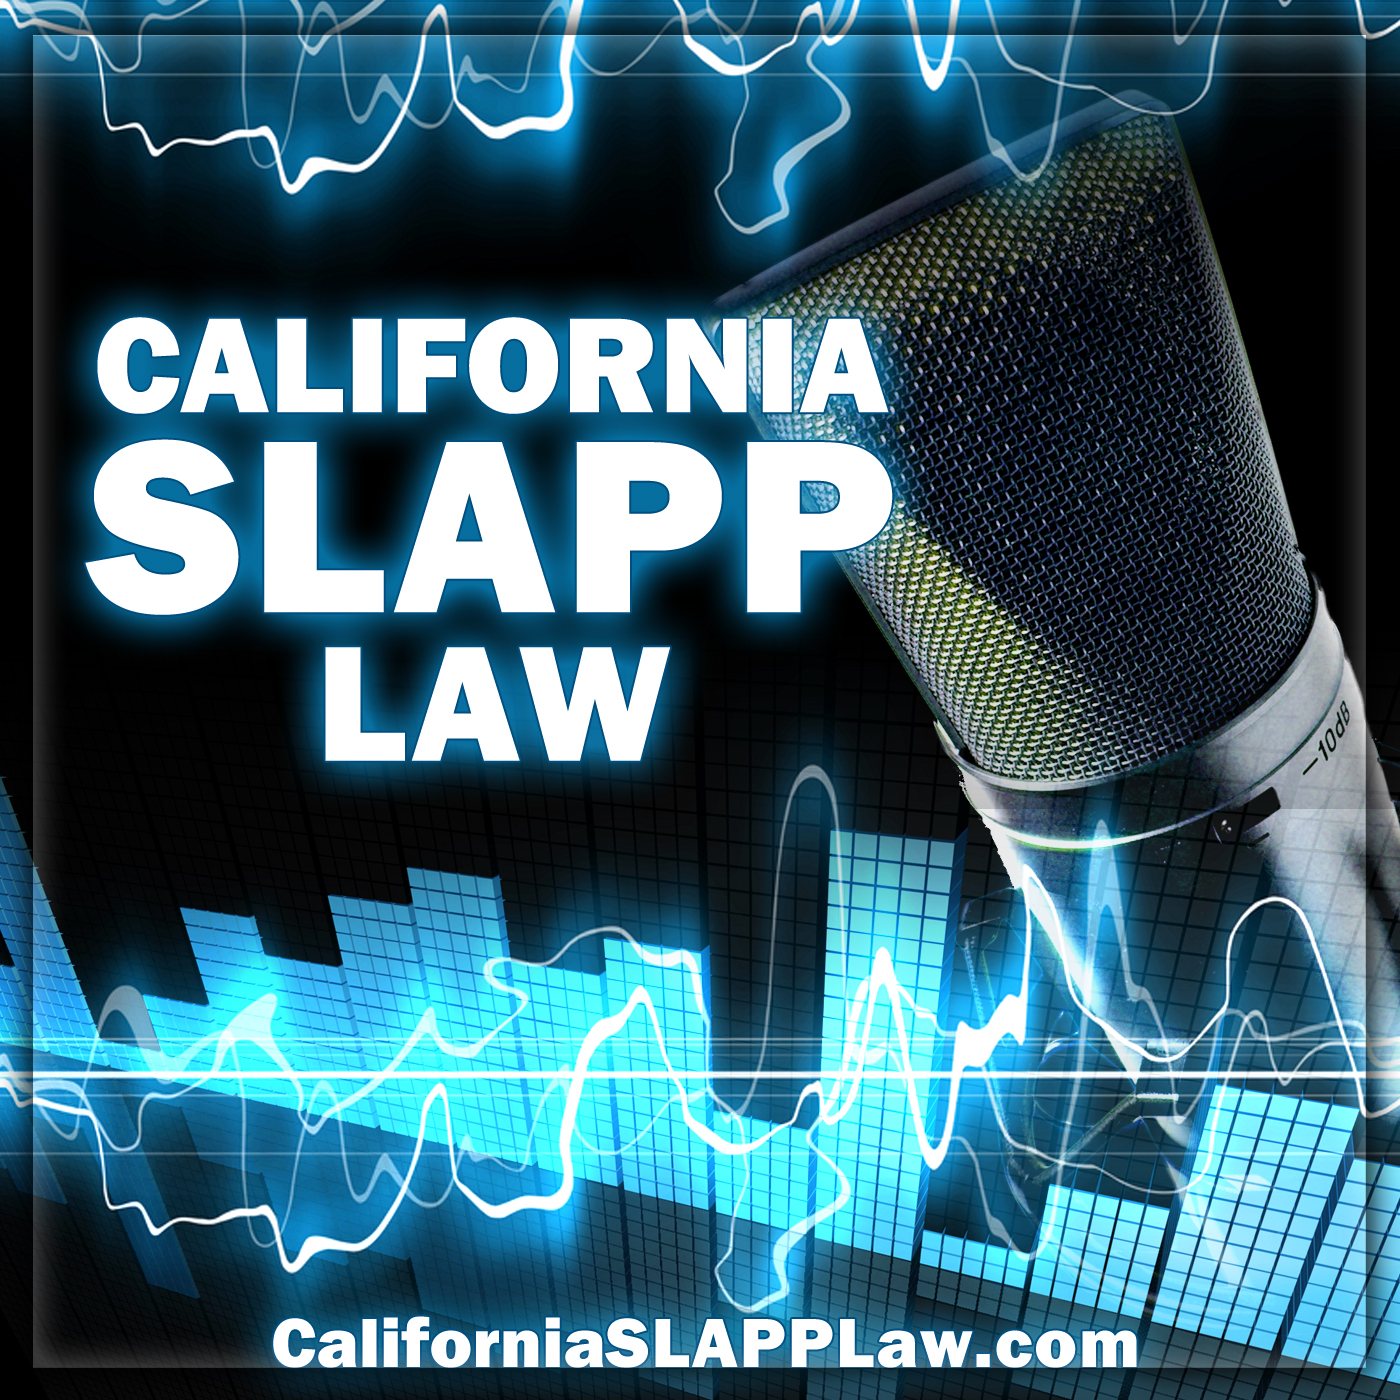 California SLAPP Law